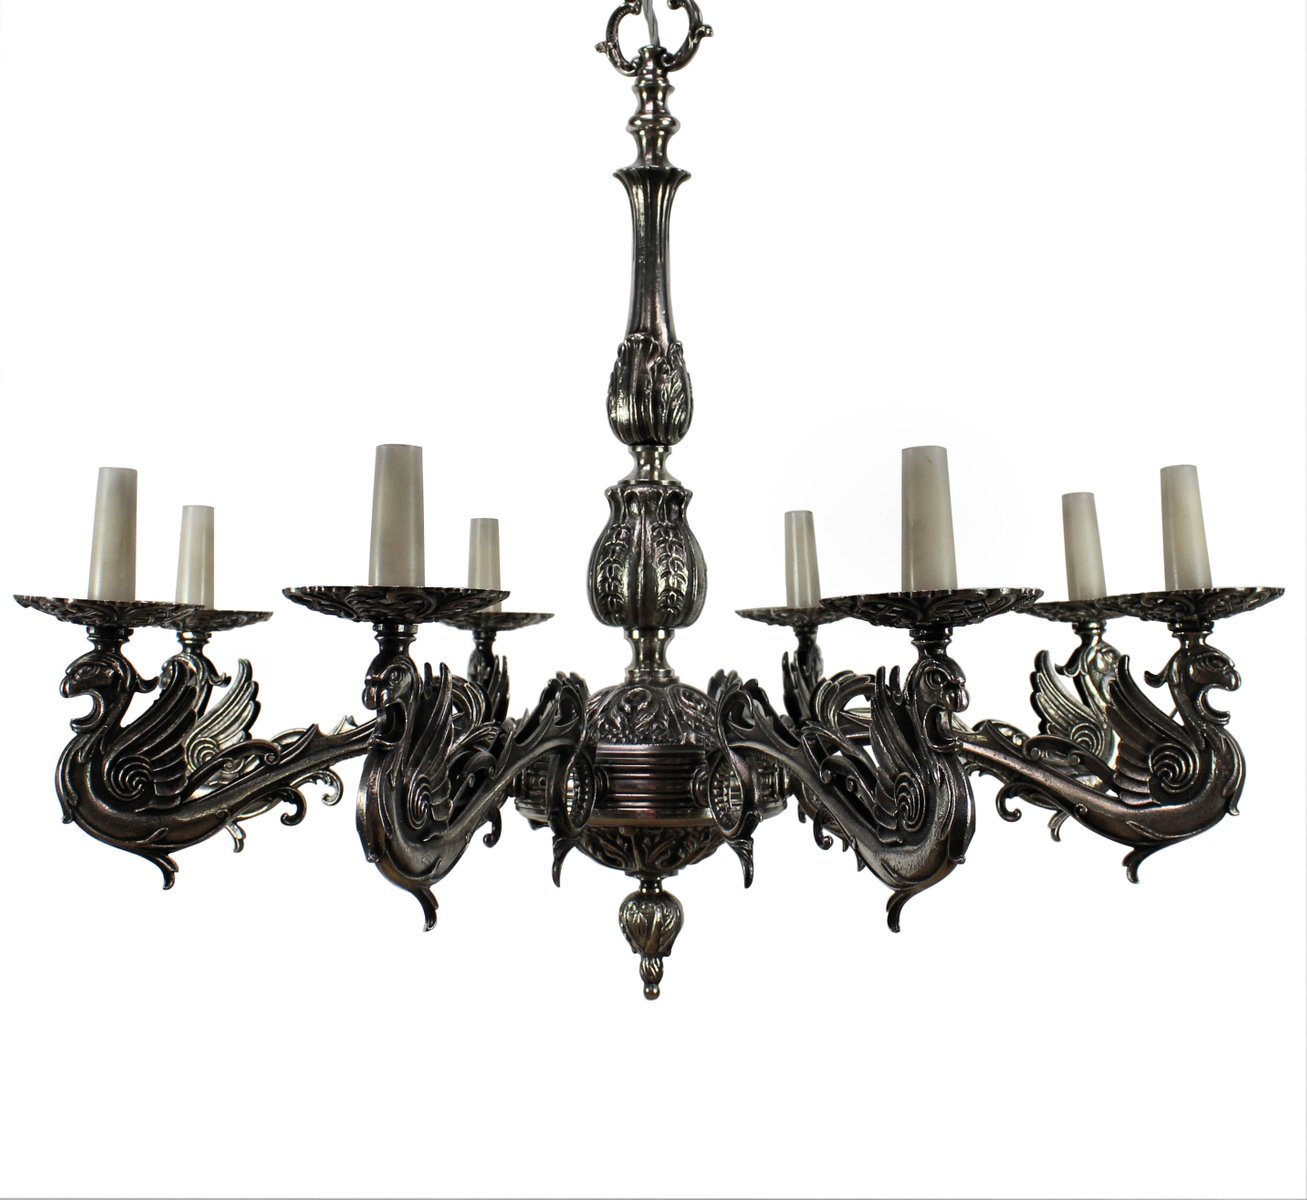 French silvered bronze gothic style chandelier 1900s for sale at pamono french silvered bronze gothic style chandelier 1900s aloadofball Images